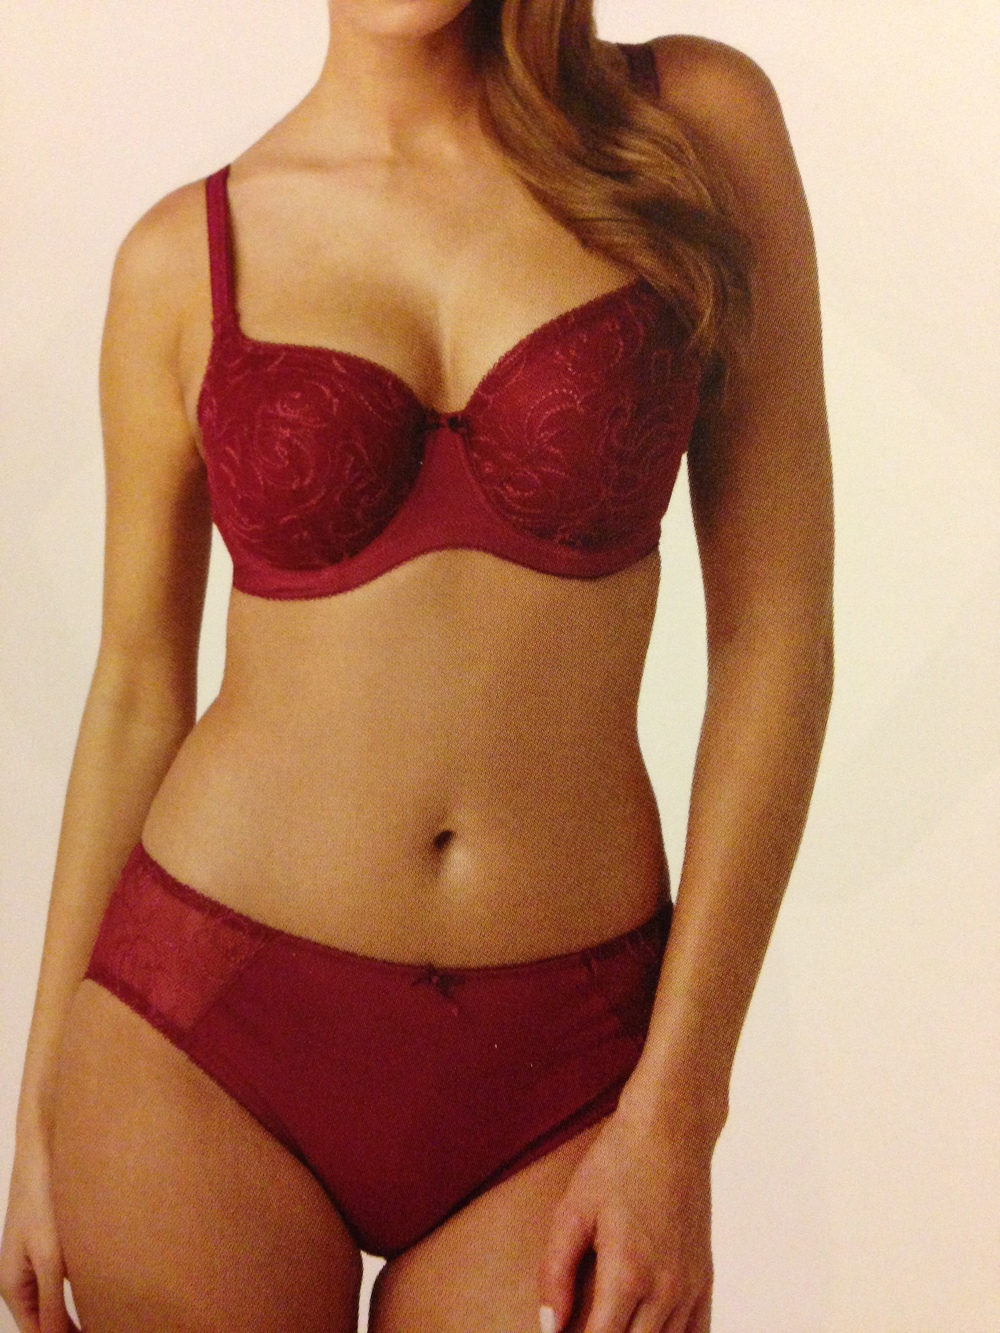 Rhapsody Balconnet Bra in Cranberry, 28-40 D-K, 42 D-J, 44 DD-FF, and Brief, 8-20